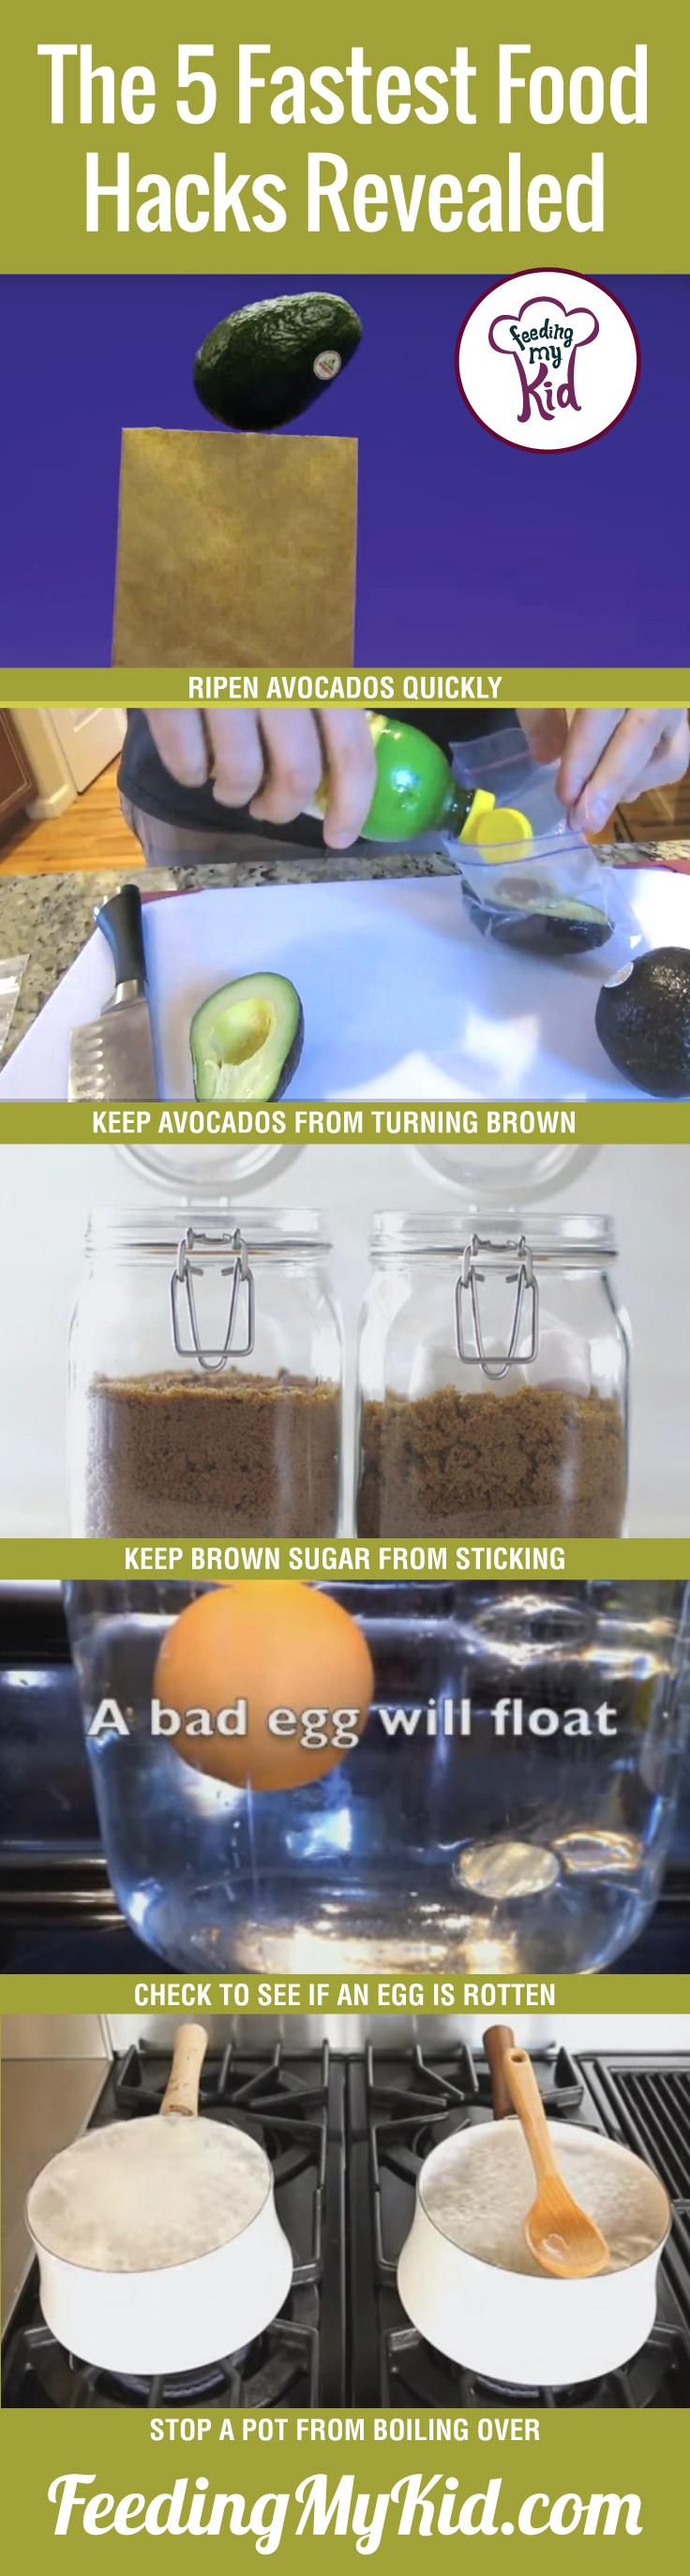 Save time, money, and your sanity with these easy food hacks everyone should know.